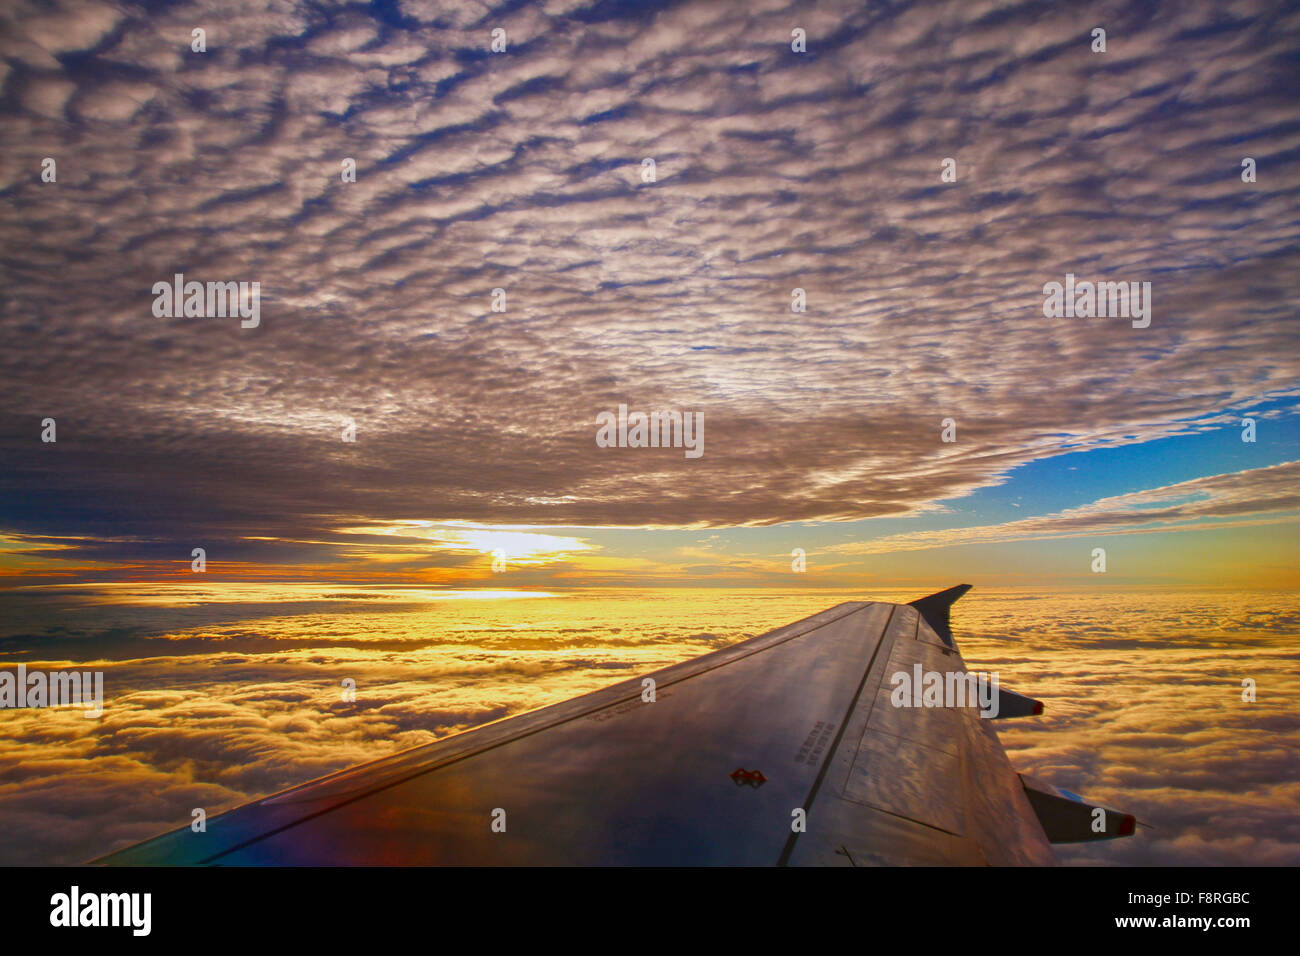 Airplane wing at sunset Stock Photo